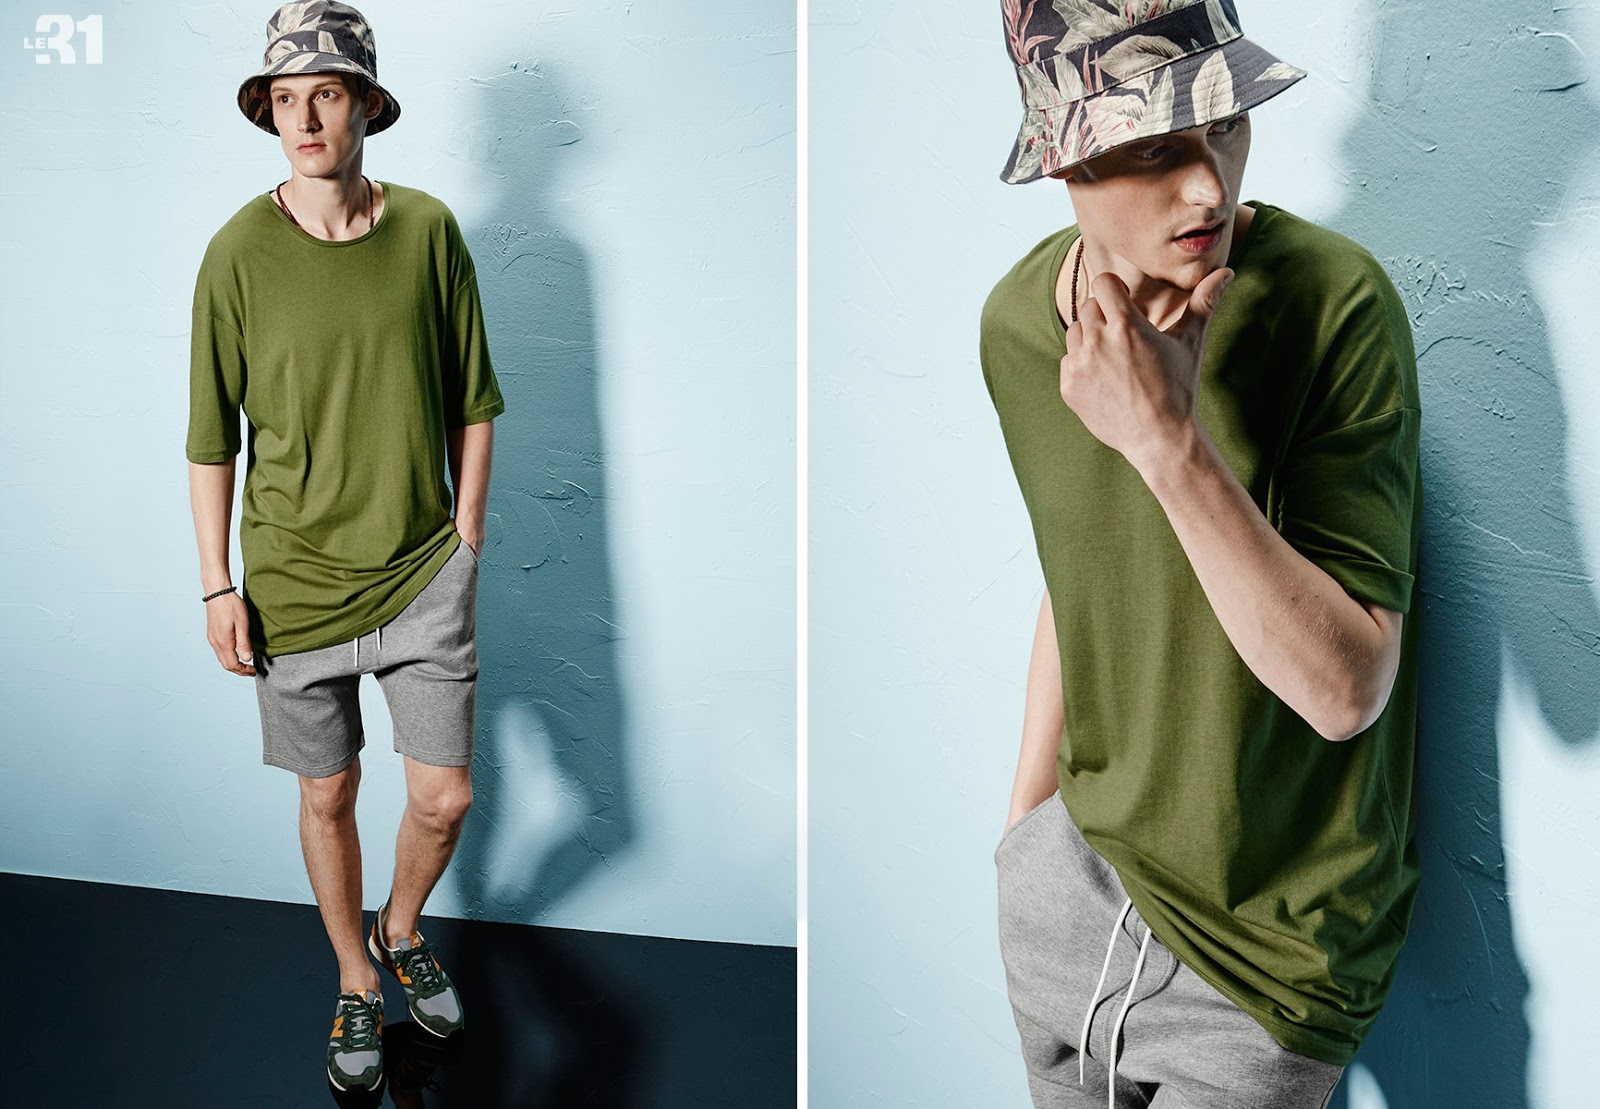 Adam Butcher is Effortlessly Cool in Relaxed Simons Styles